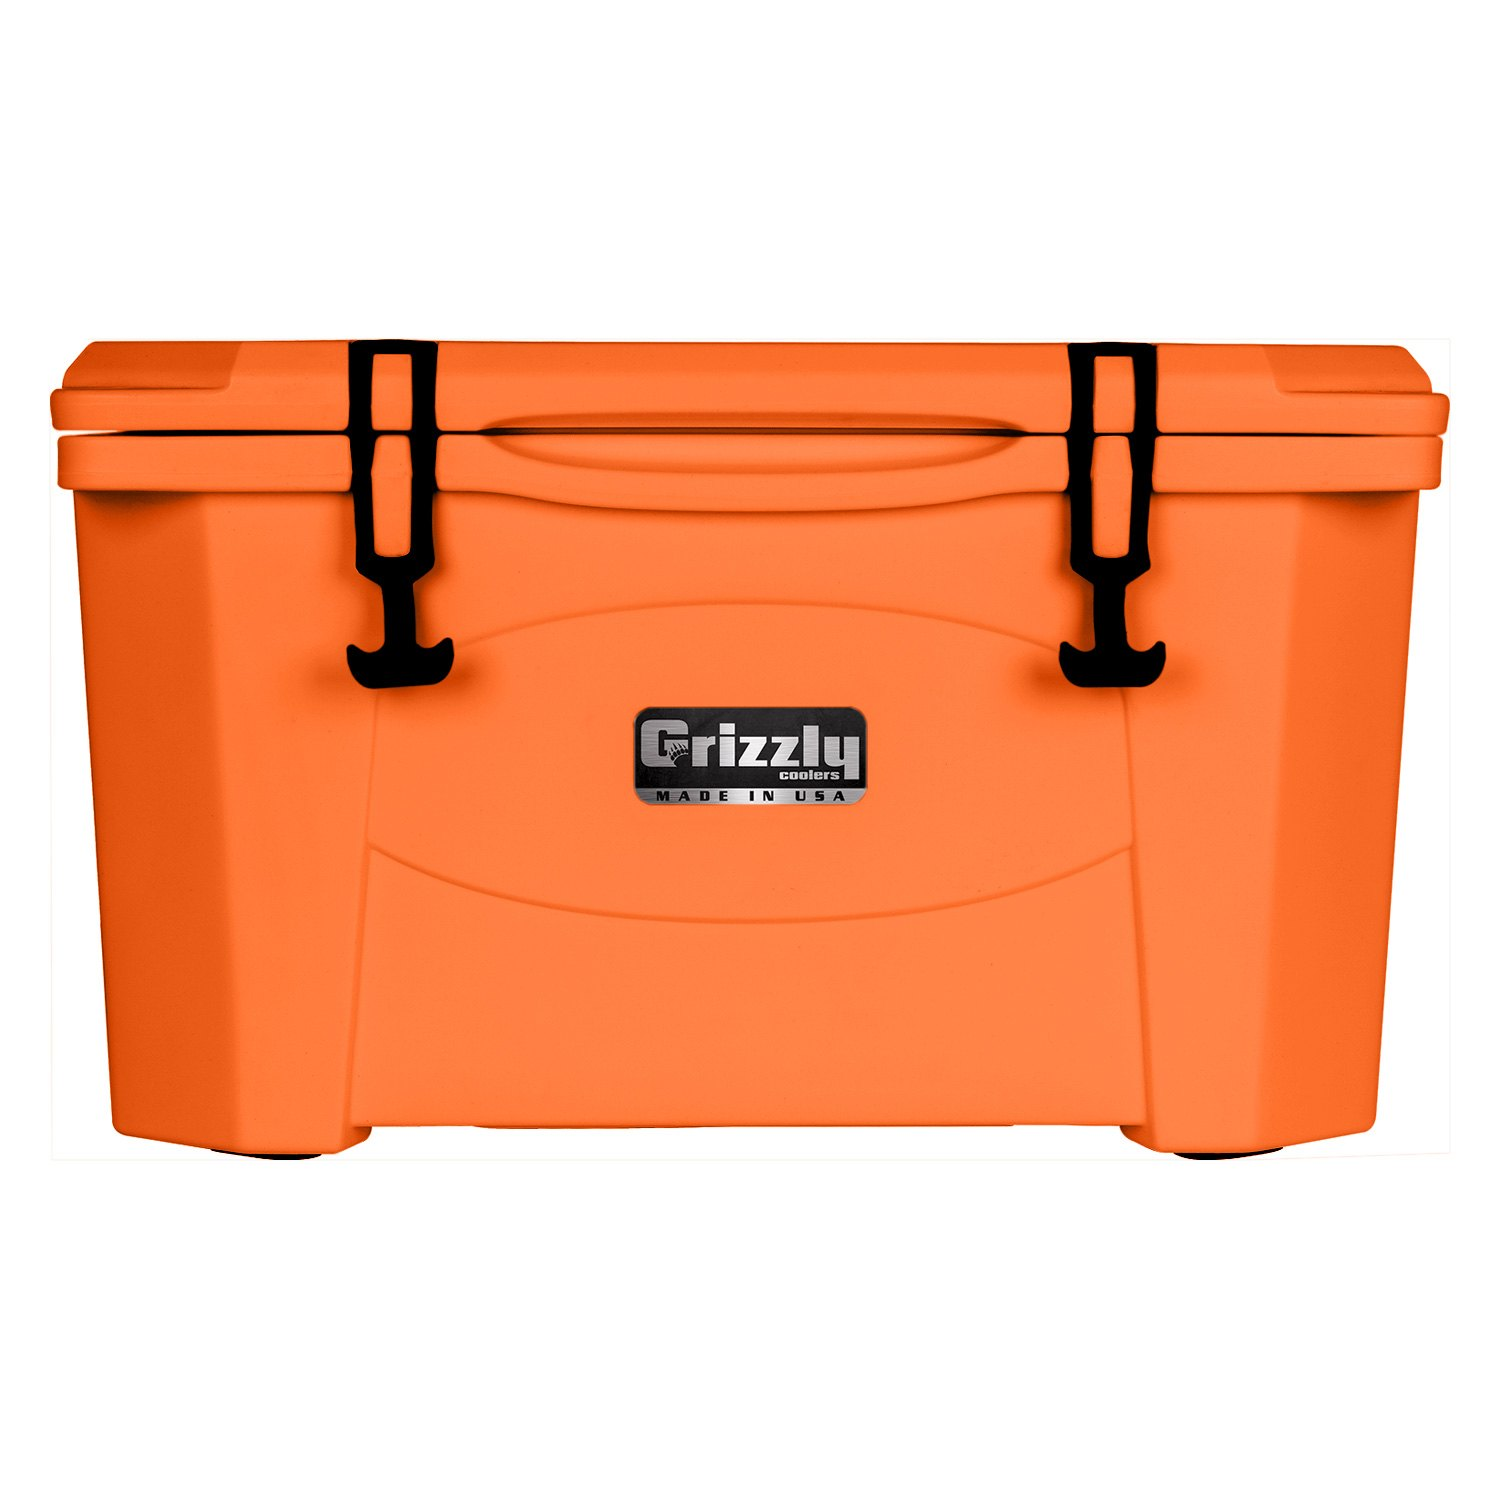 grizzly coolers 40 quart portable cooler